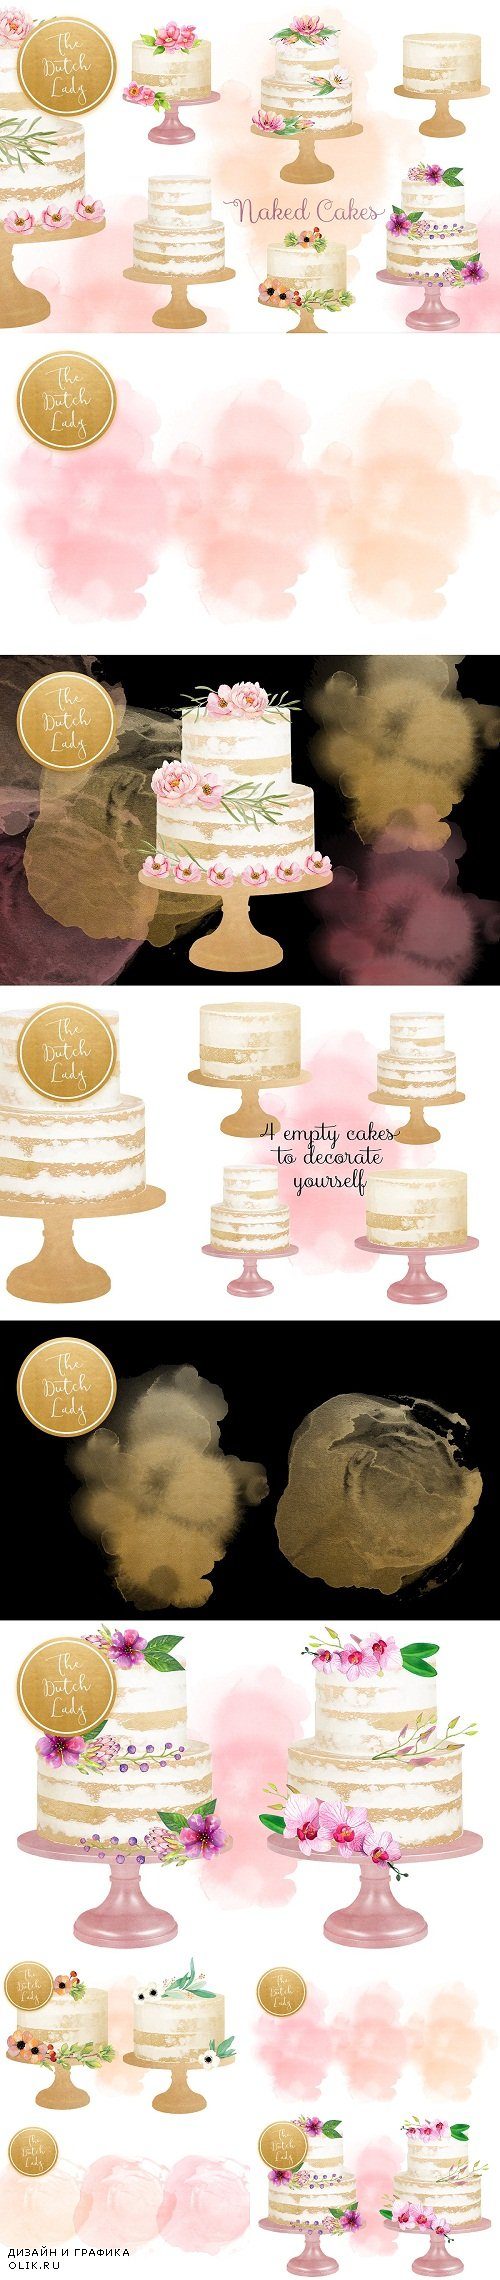 Naked Layered Wedding Cake Clipart - 3533344